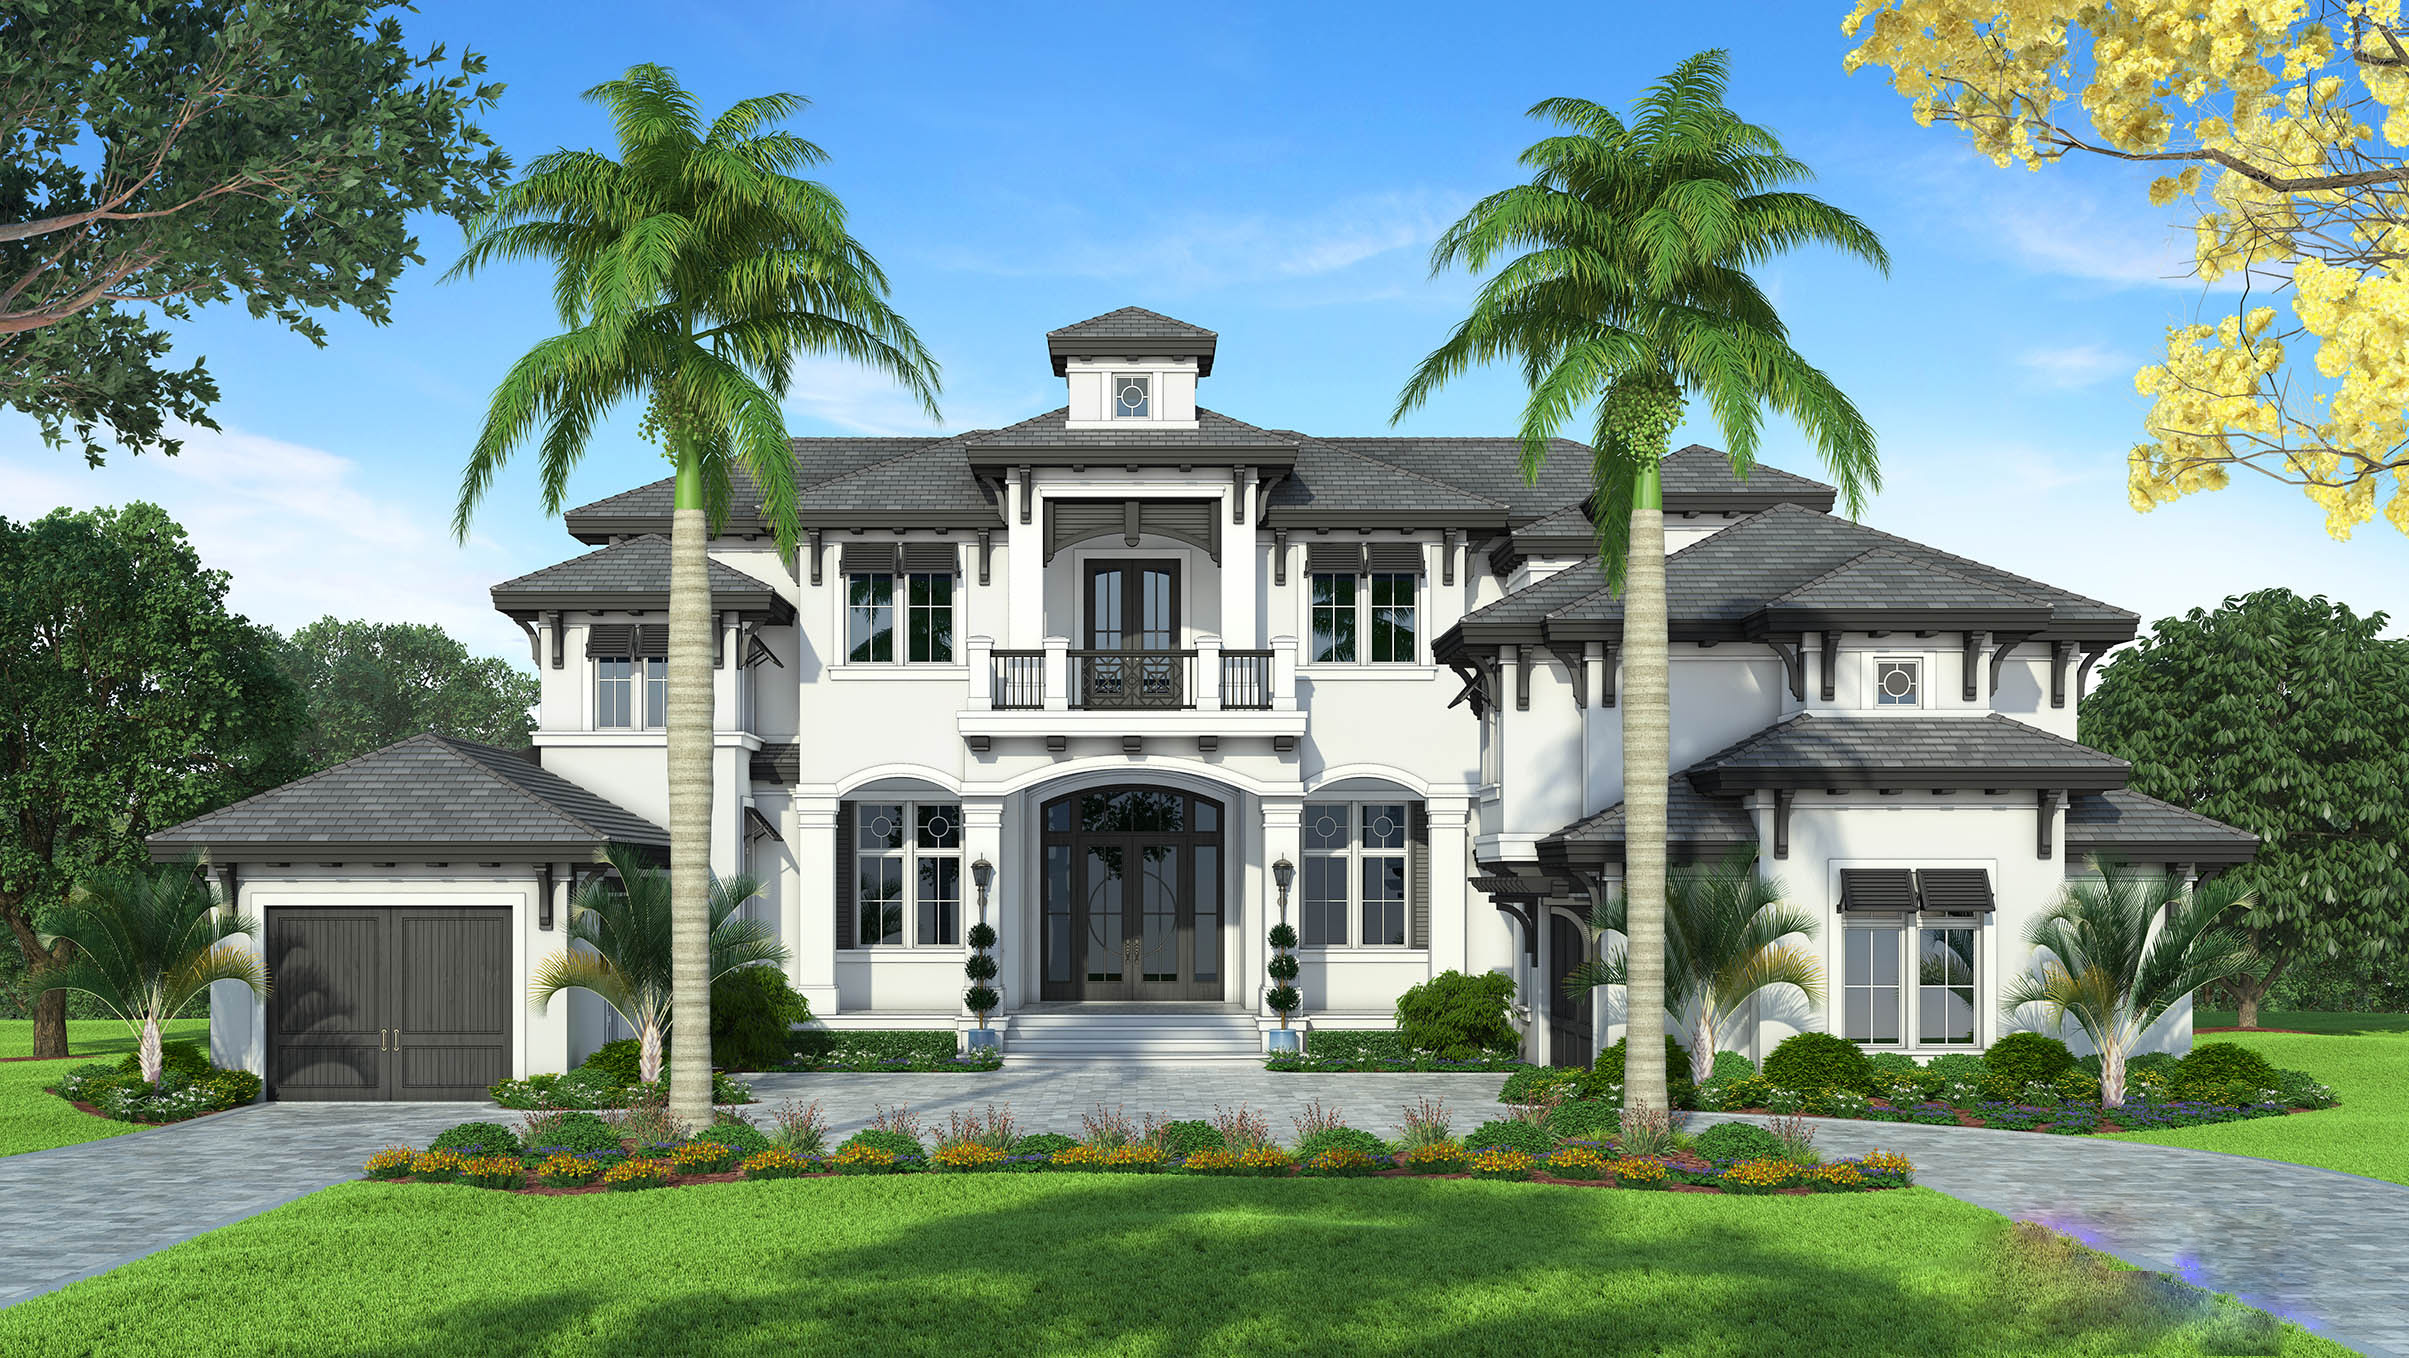 Grand florida house plan with junior master suite budron for Florida house plans with photos